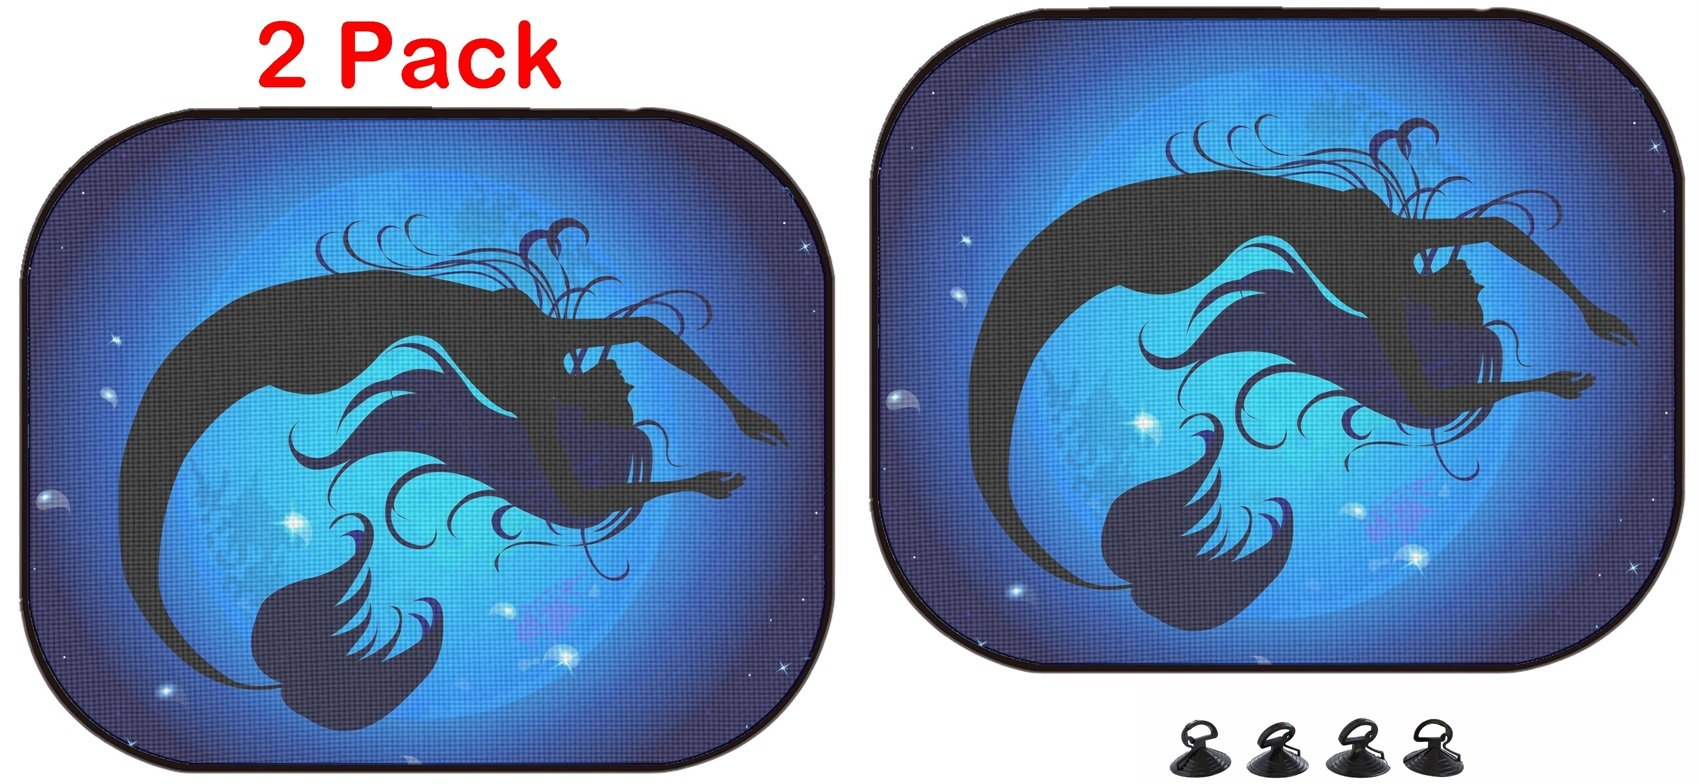 Luxlady Car Sun Shade Protector Block Damaging UV Rays Sunlight Heat for All Vehicles, 2 Pack Image ID: 35447018 Silhouette Jumped Out of The Water Mermaid on a Background of